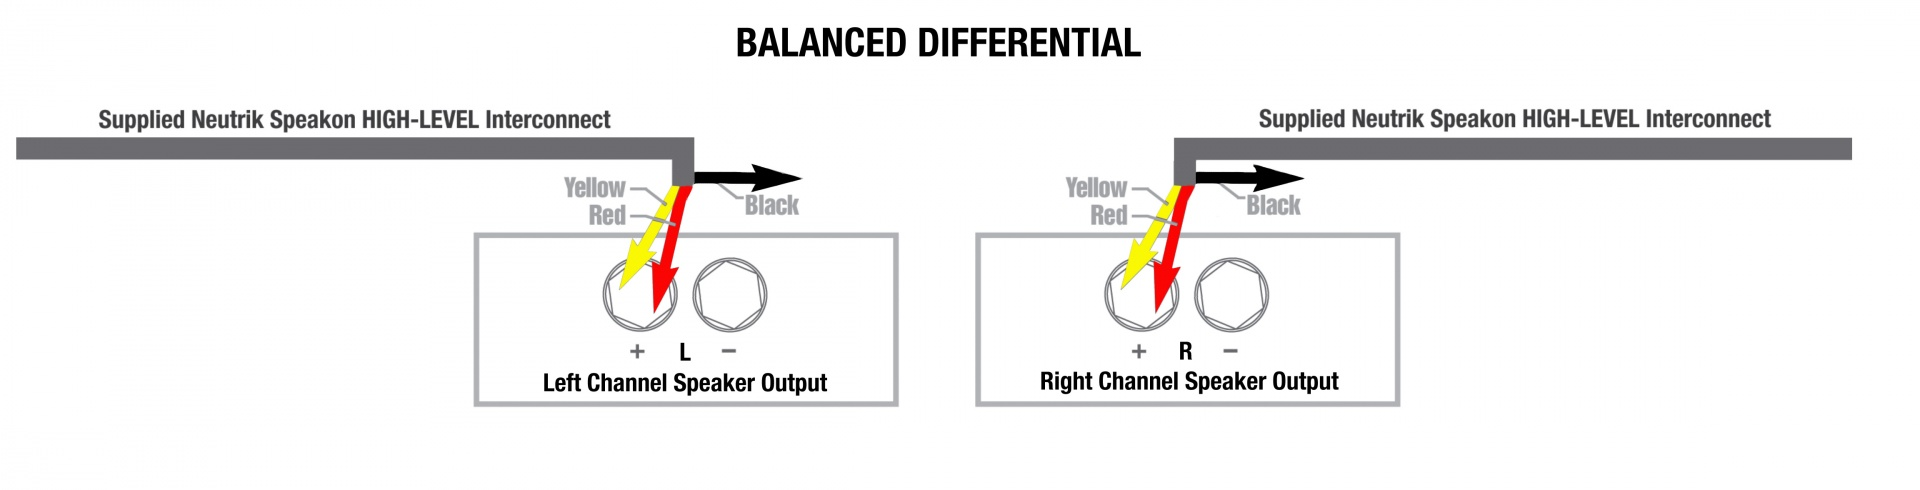 pp2 3 balanced differential monoblocks part i rel acoustics rel speakon wiring diagram at webbmarketing.co